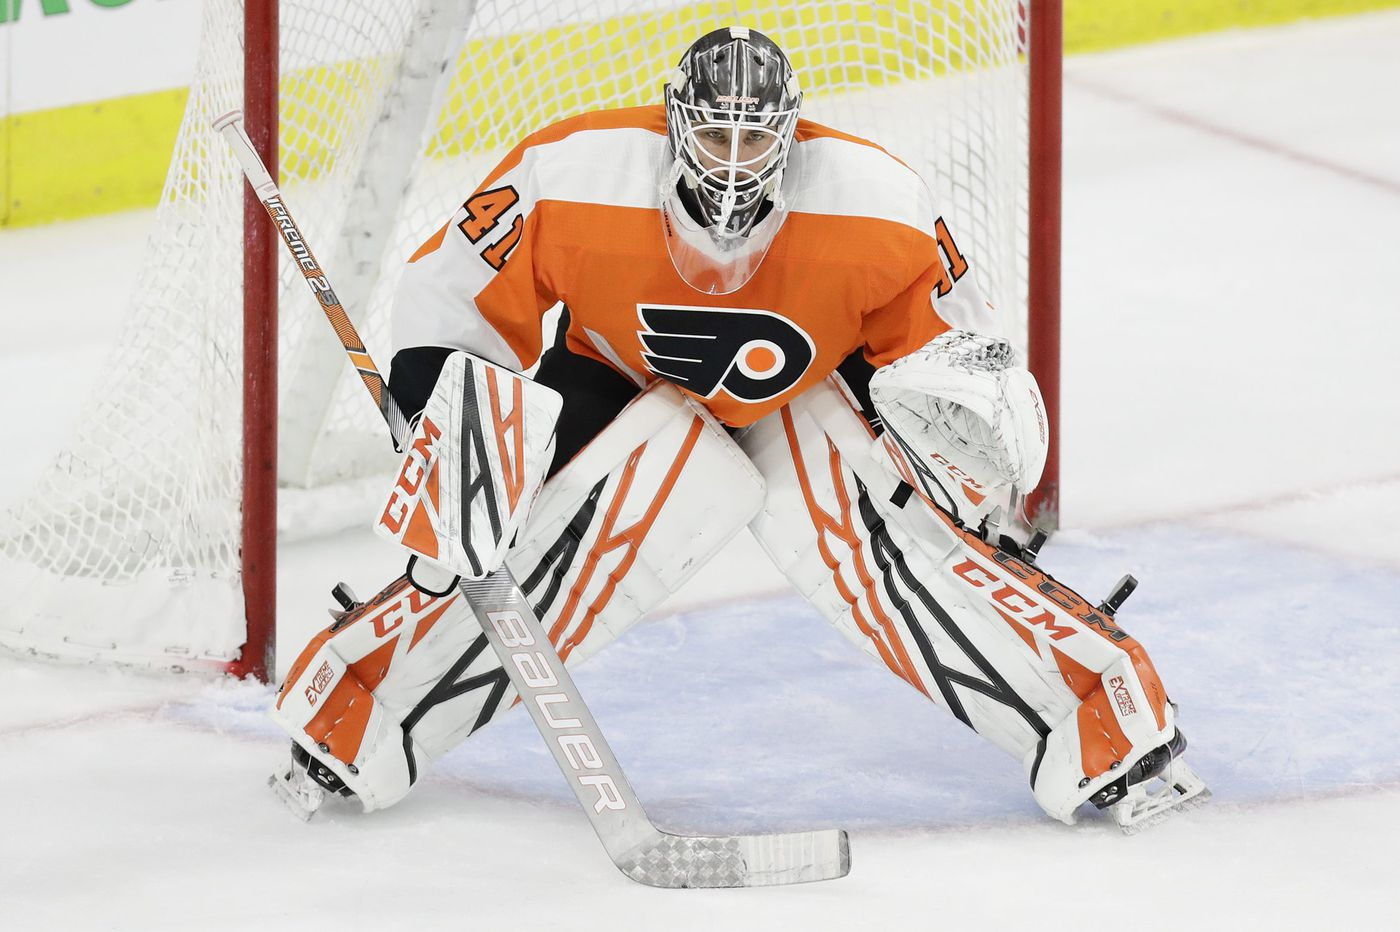 Goalie Anthony Stolarz is a bright spot for the floundering Flyers